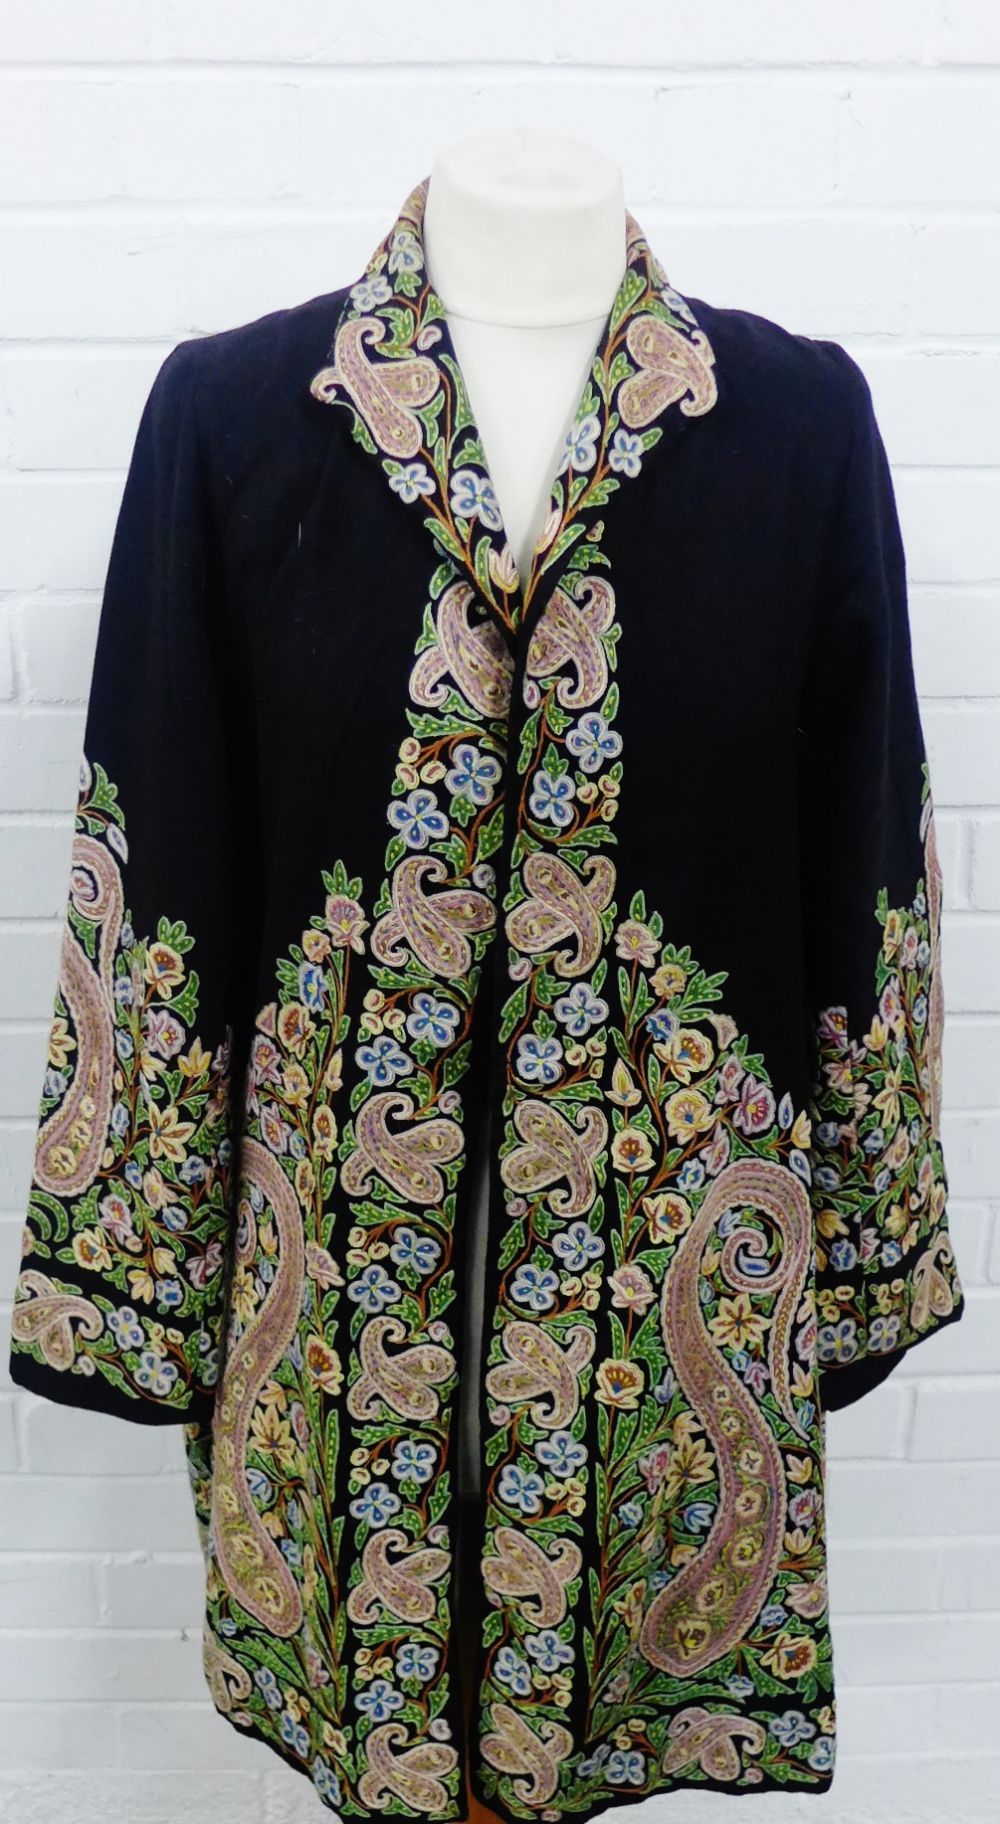 Lot 354 - Japanese jacket with intricate floral embroidered borders